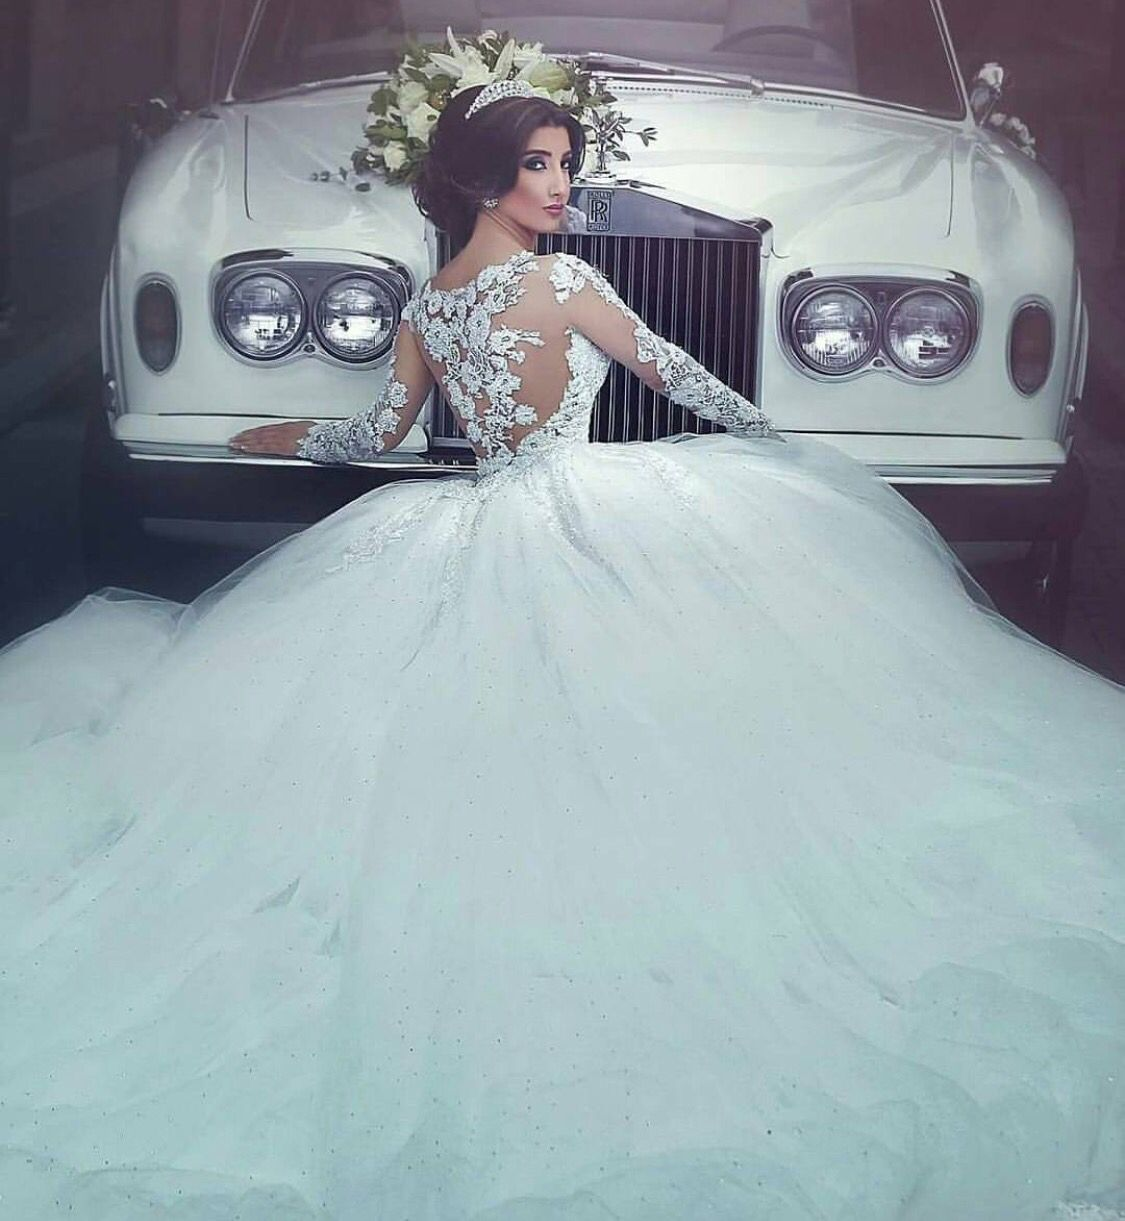 Beautiful bride elegant classic rolls royce and limos for your